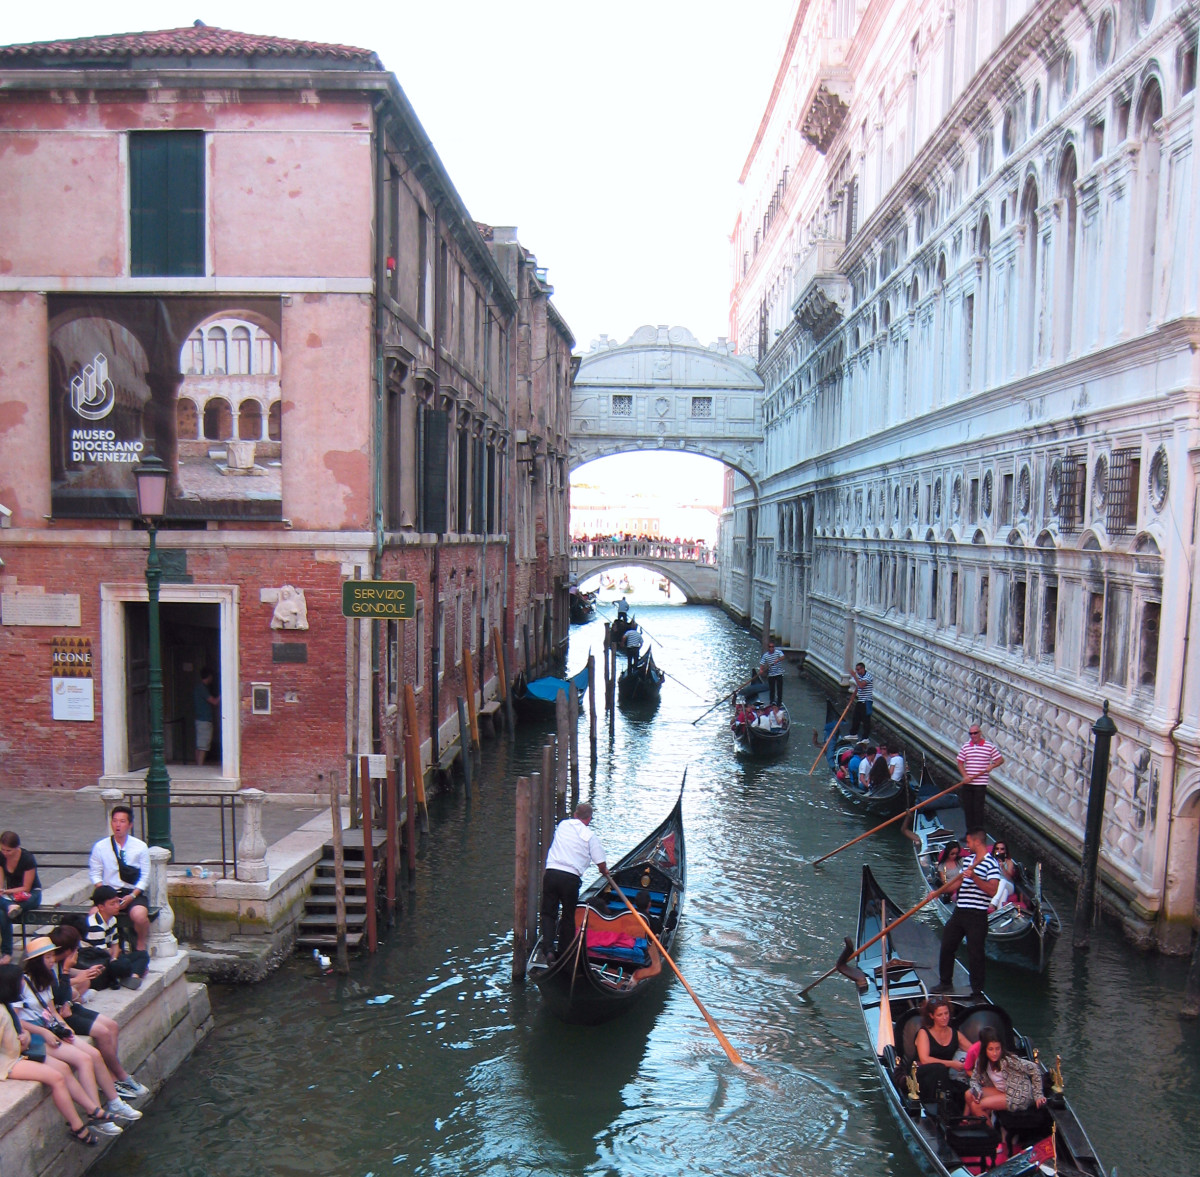 View of the Bridge of Sighs from the opposite side of the canal.